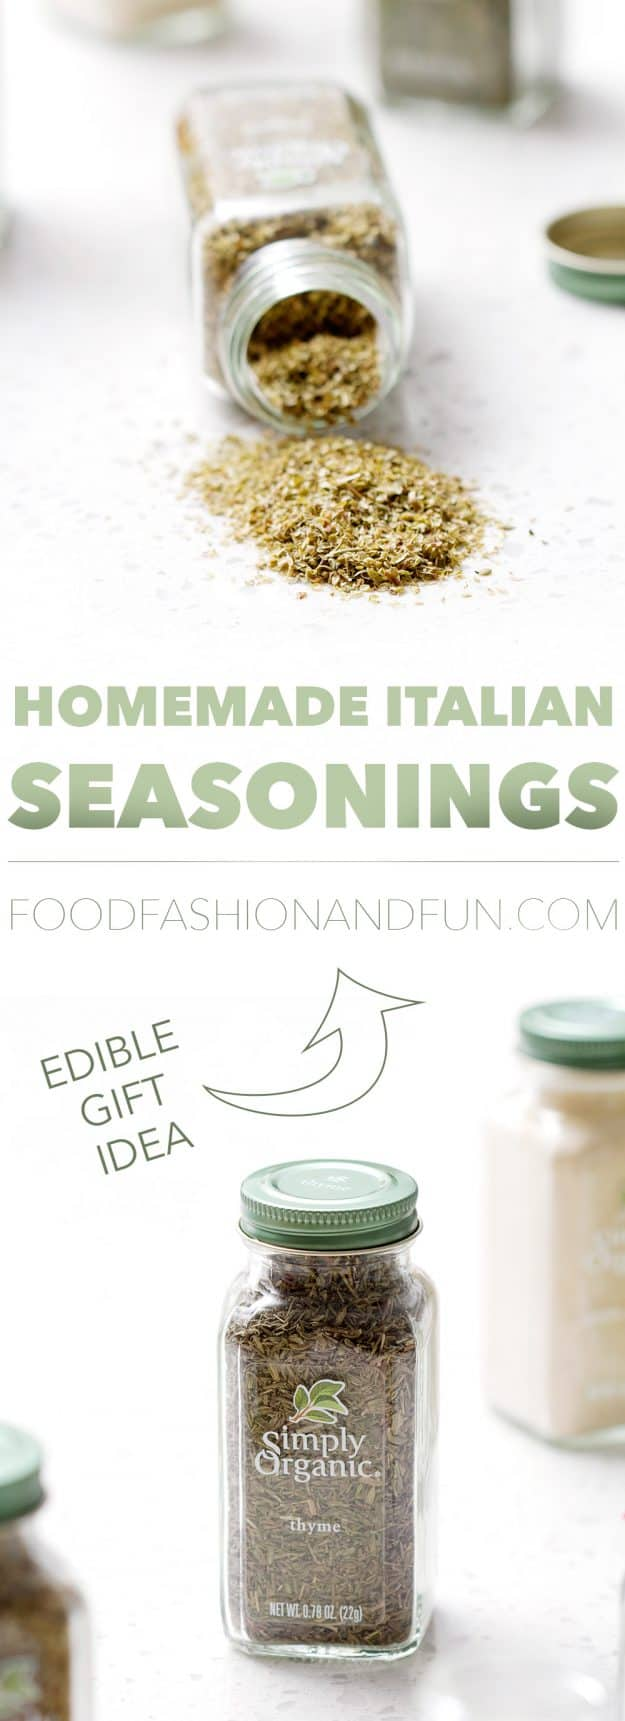 Here's a greta idea for a small gift. Make your own custom seasoning blend. THis post includes a recipe for Homemade Italian Seasonings.